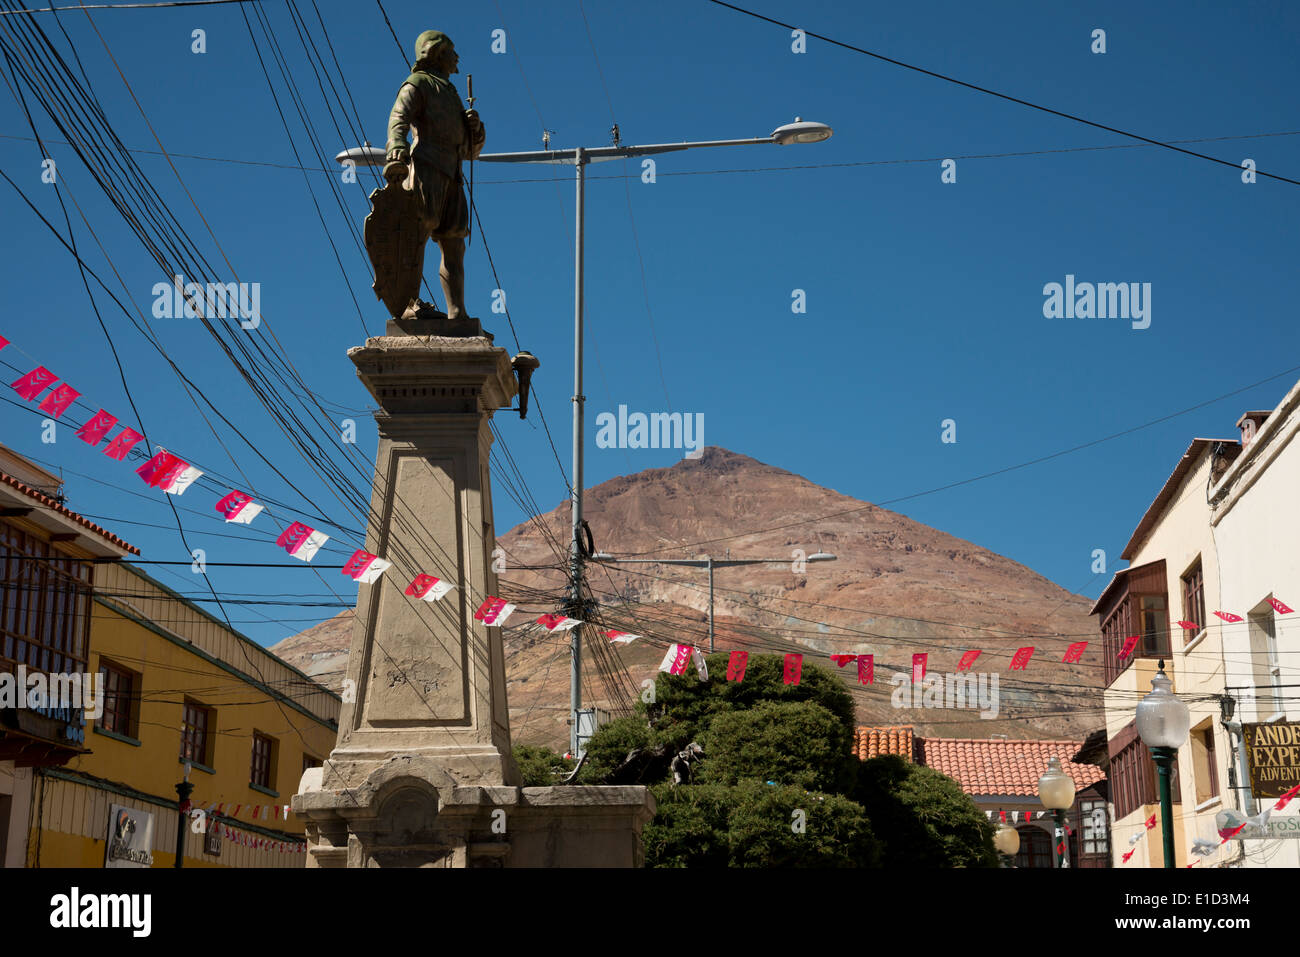 Statue in Potosi, Bolivia, with the silver mine behind it. - Stock Image